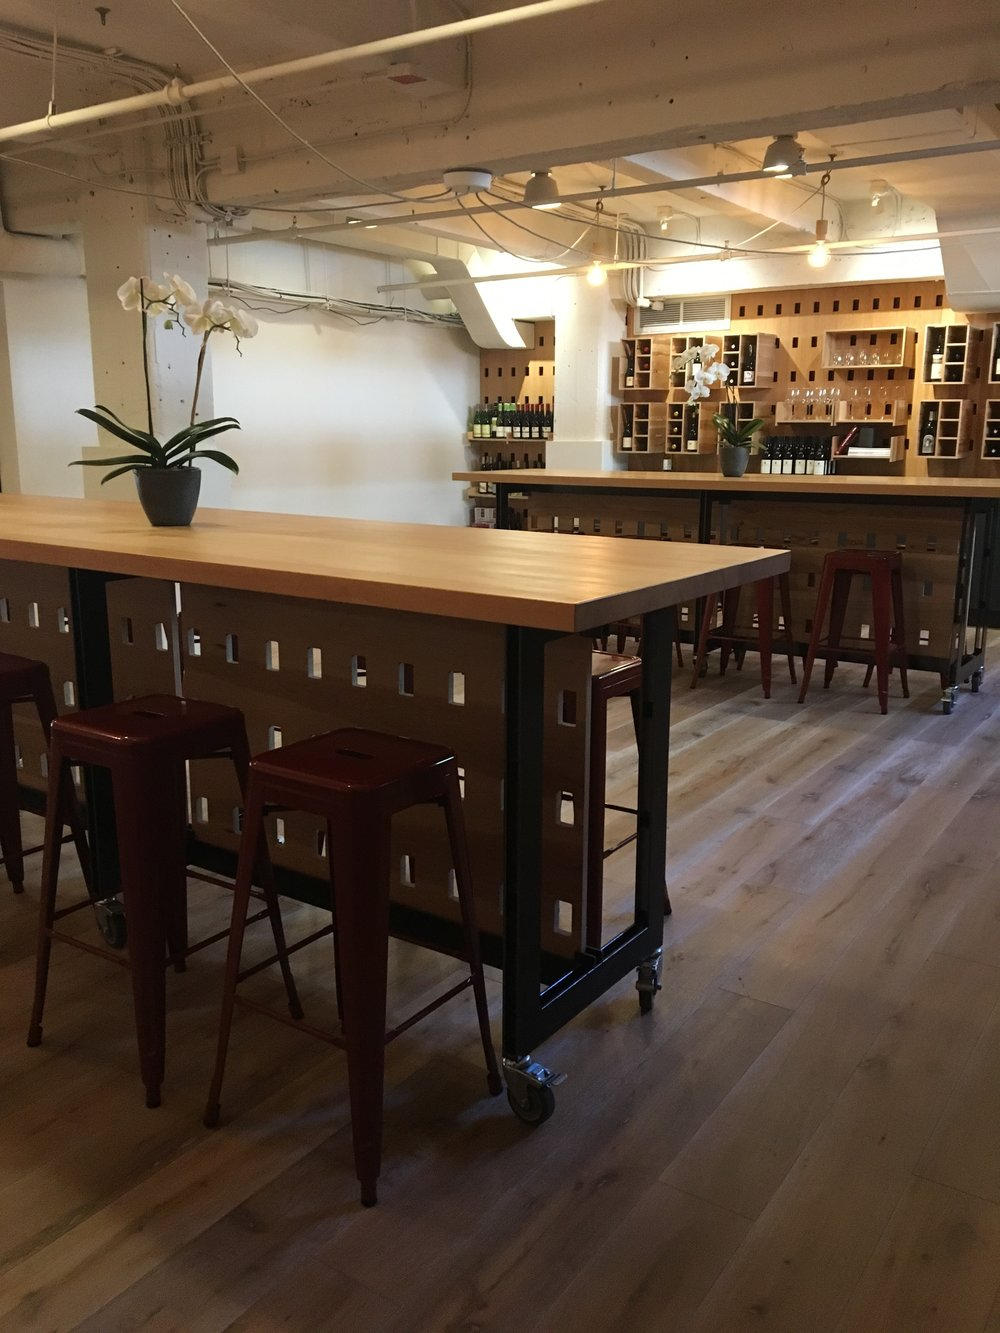 Event Space - A special events space/tasting room is available to rent at the back of Mayhew Wine Shop. It is accented by sliding barn doors that can be open to the rest of the shop or closed for a more private feel. The tasting room has 2 large rustic wood tasting tables, custom cabinetry and surfaces, and can accommodate up to 50 people.